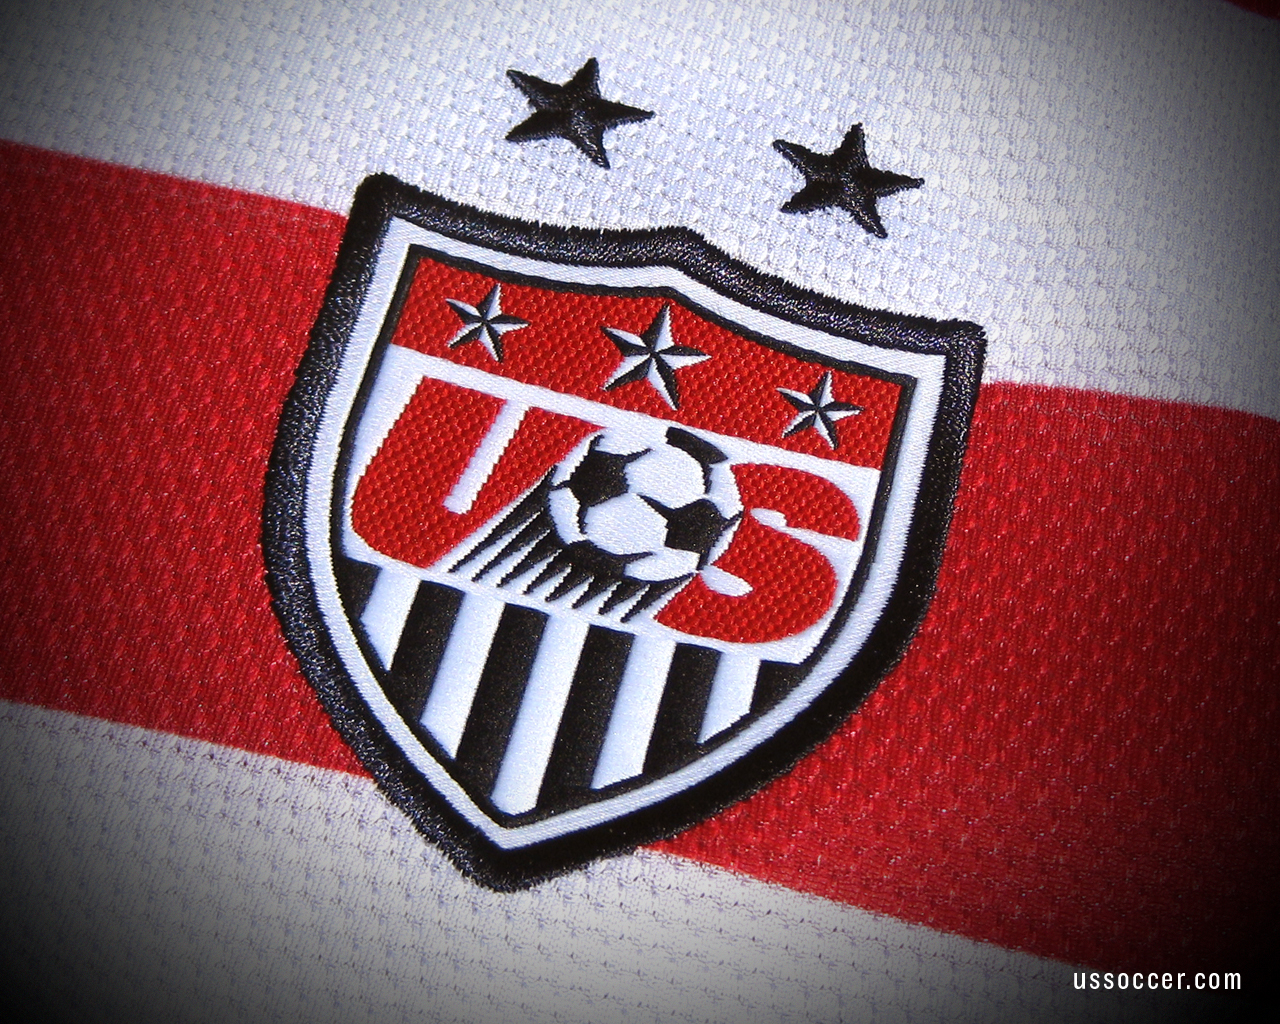 Wallpaper download jat - Us Soccer Wallpaper